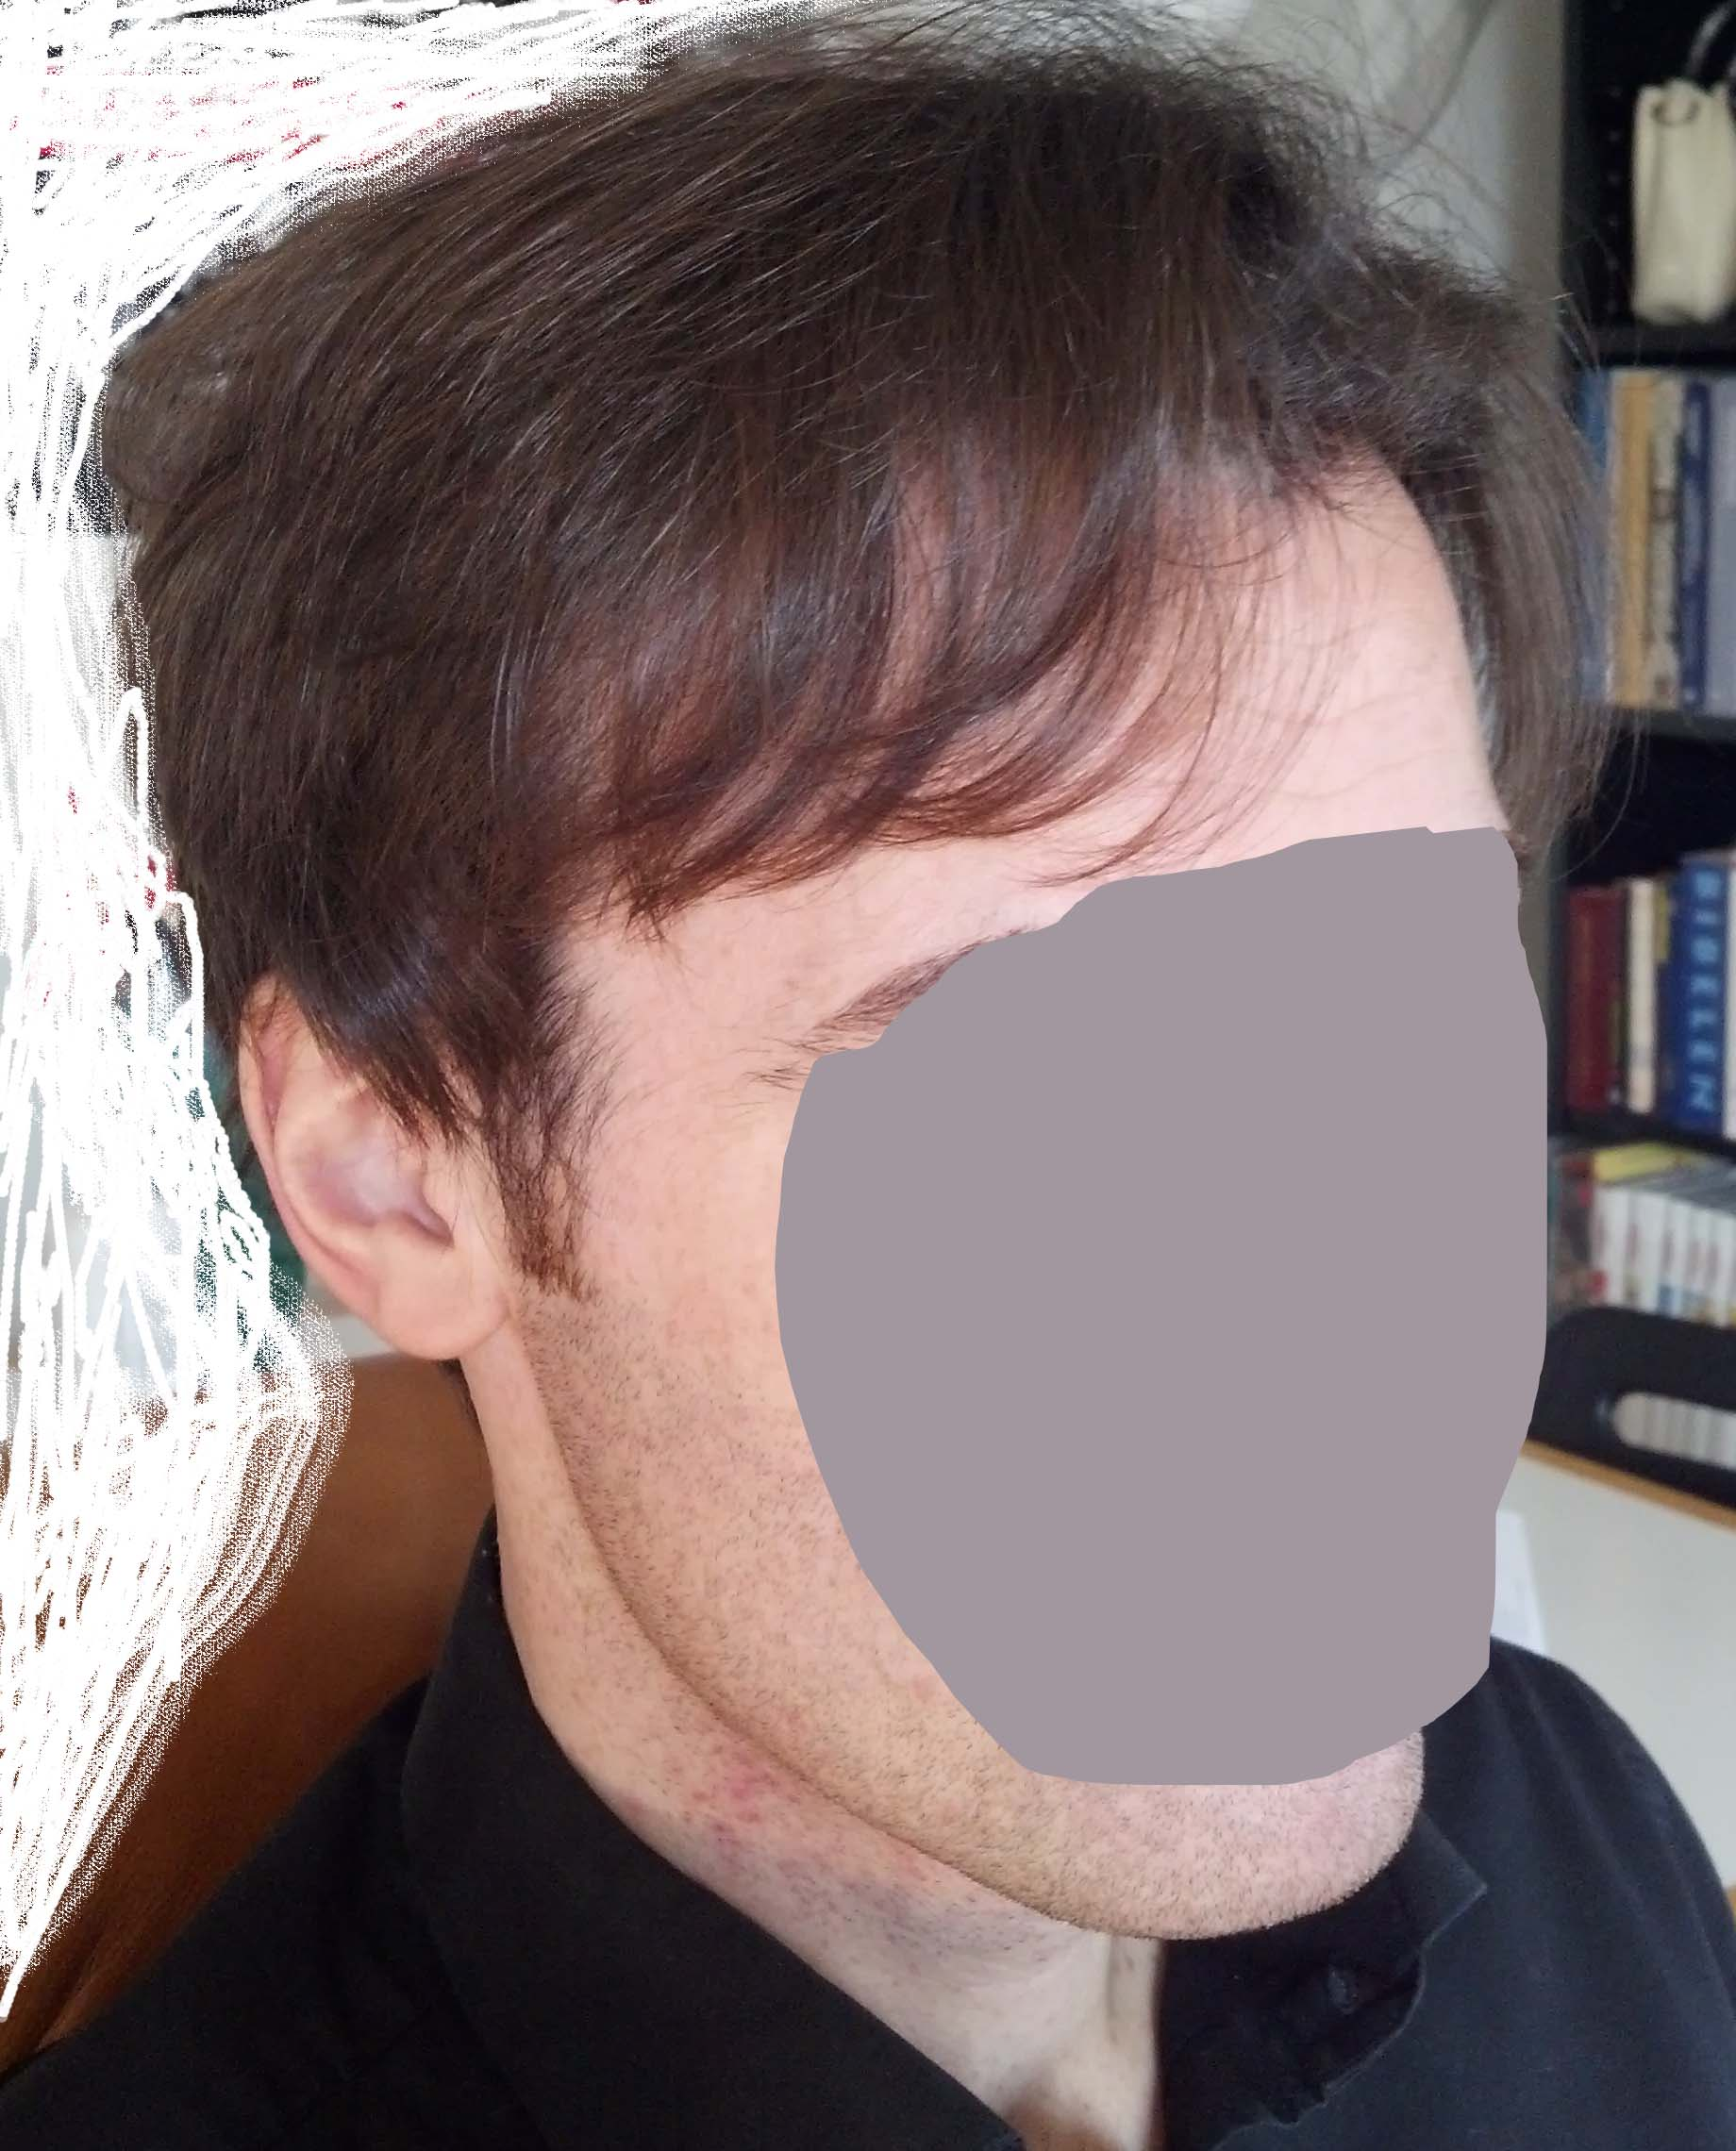 My New Haircut 5 Months After Surgery